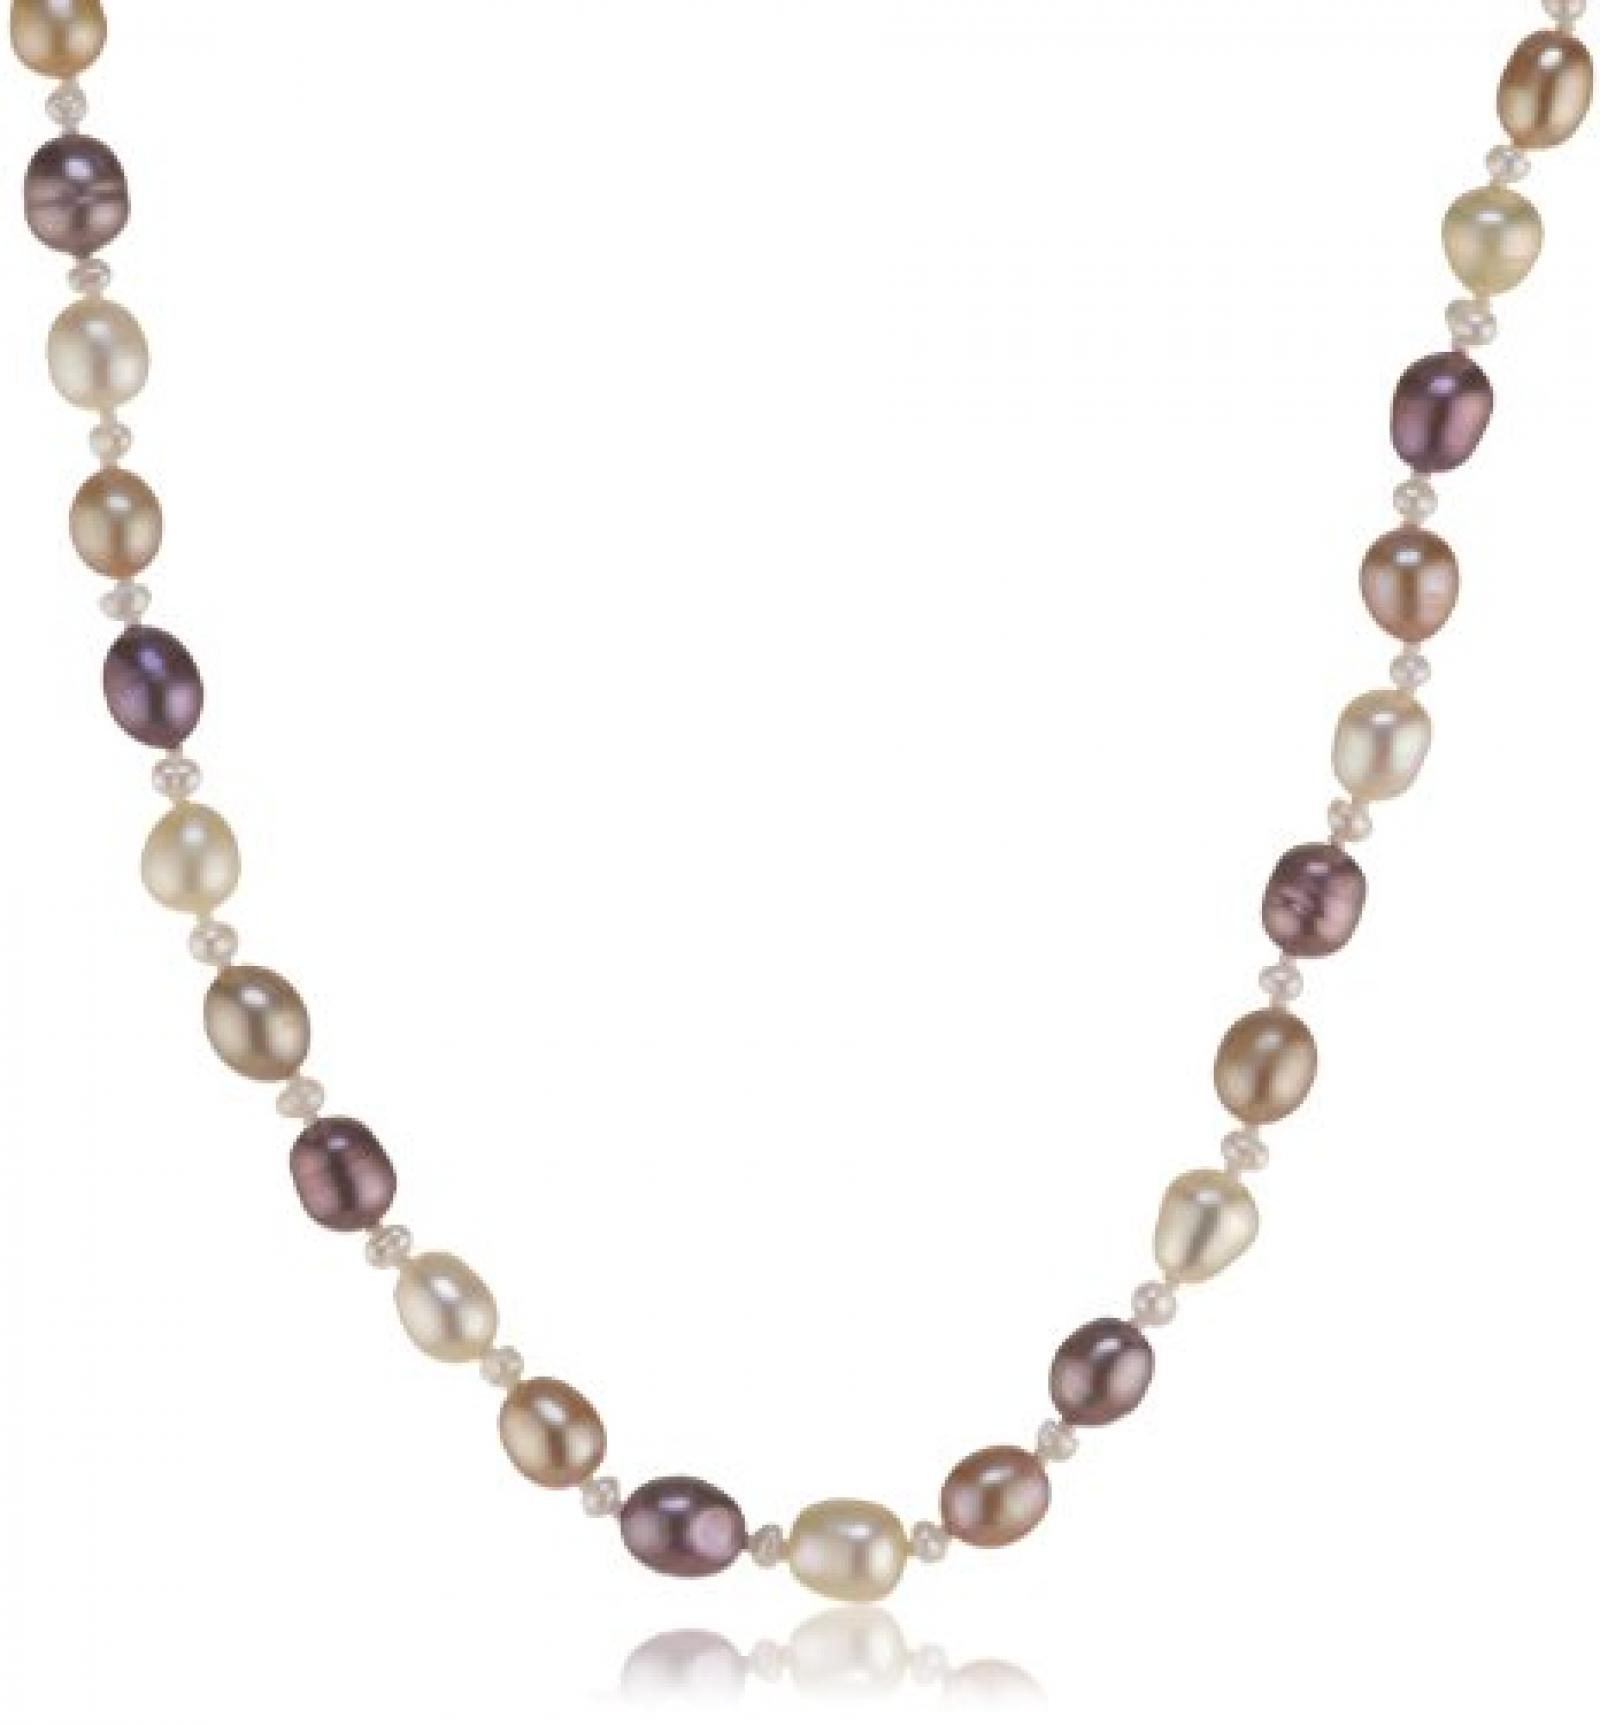 Valero Pearls Fashion Collection Damen-Kette Hochwertige Süßwasser-Zuchtperlen in ca.  4-6 mm Oval weiß / champagner / chocolate 925 Sterling Silber    43 cm   474530